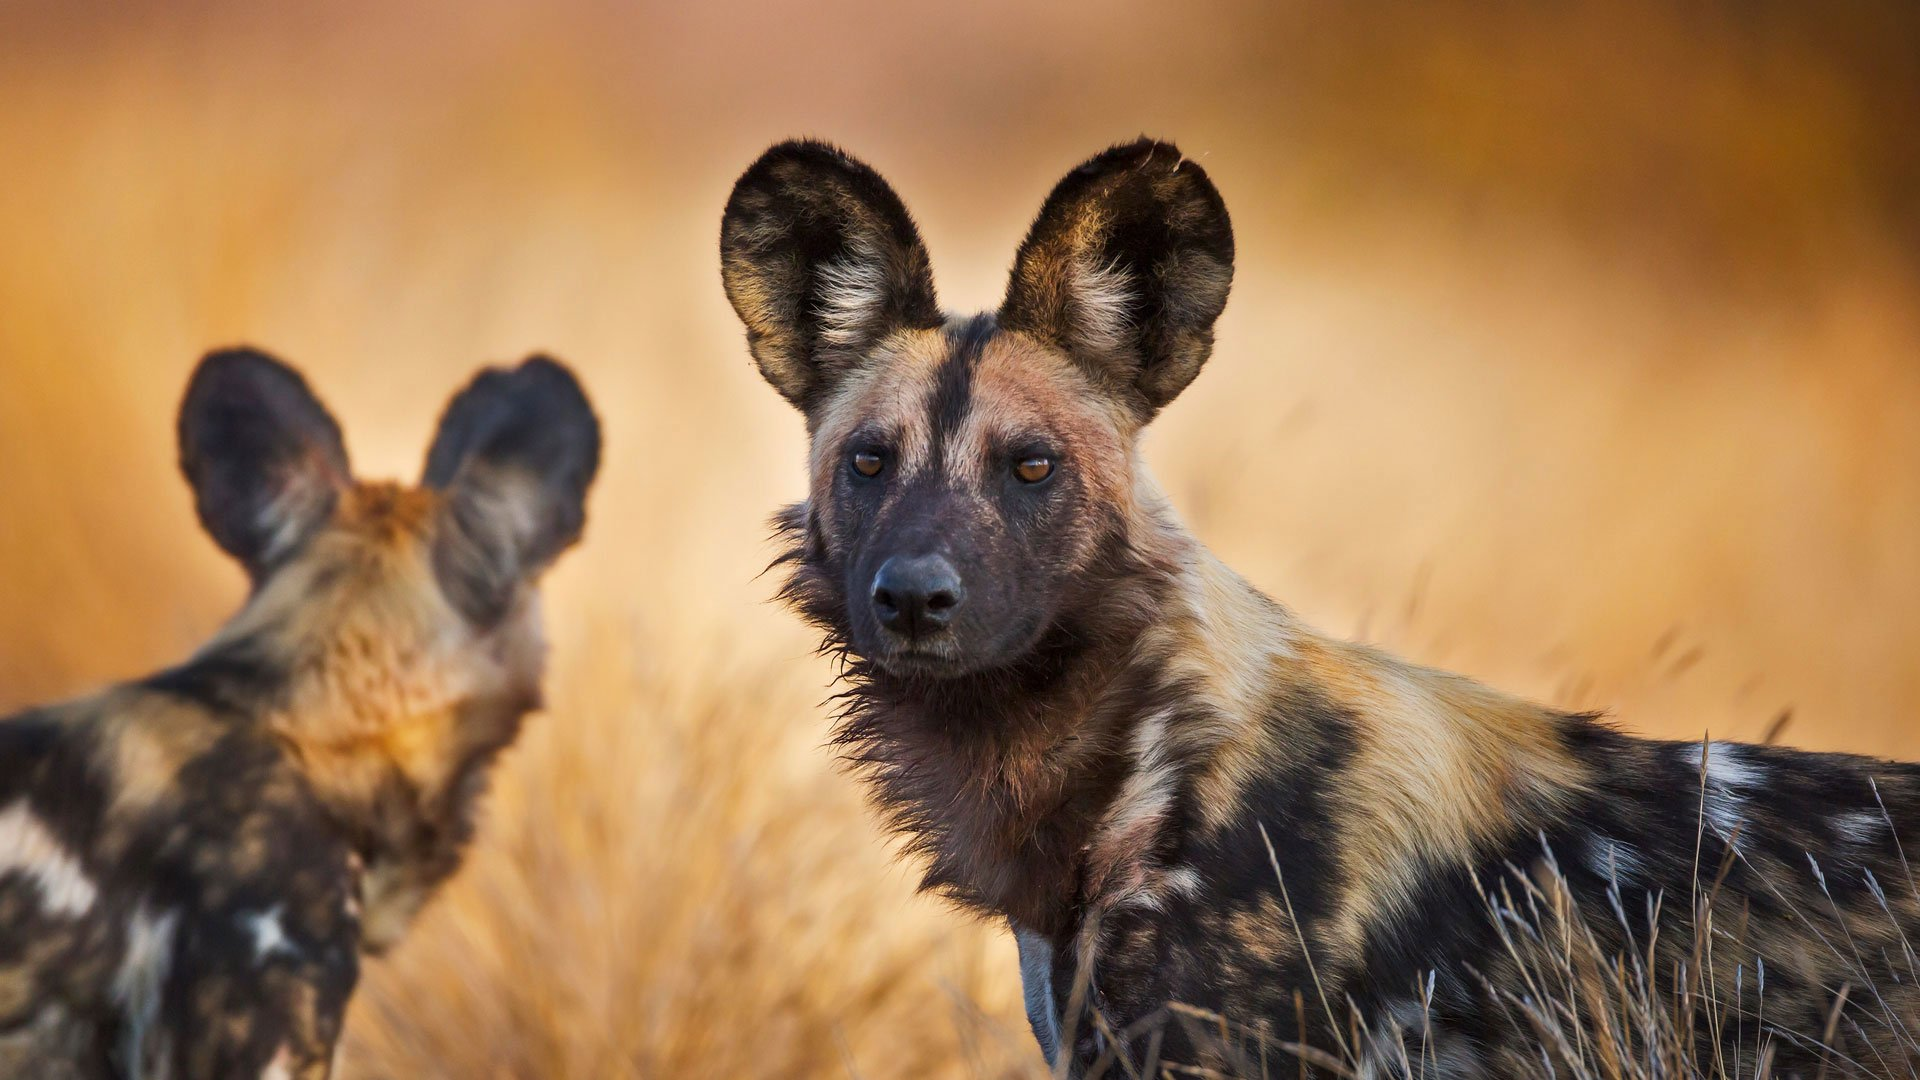 African Wild Dogs Hd Wallpaper  Background Image -4216